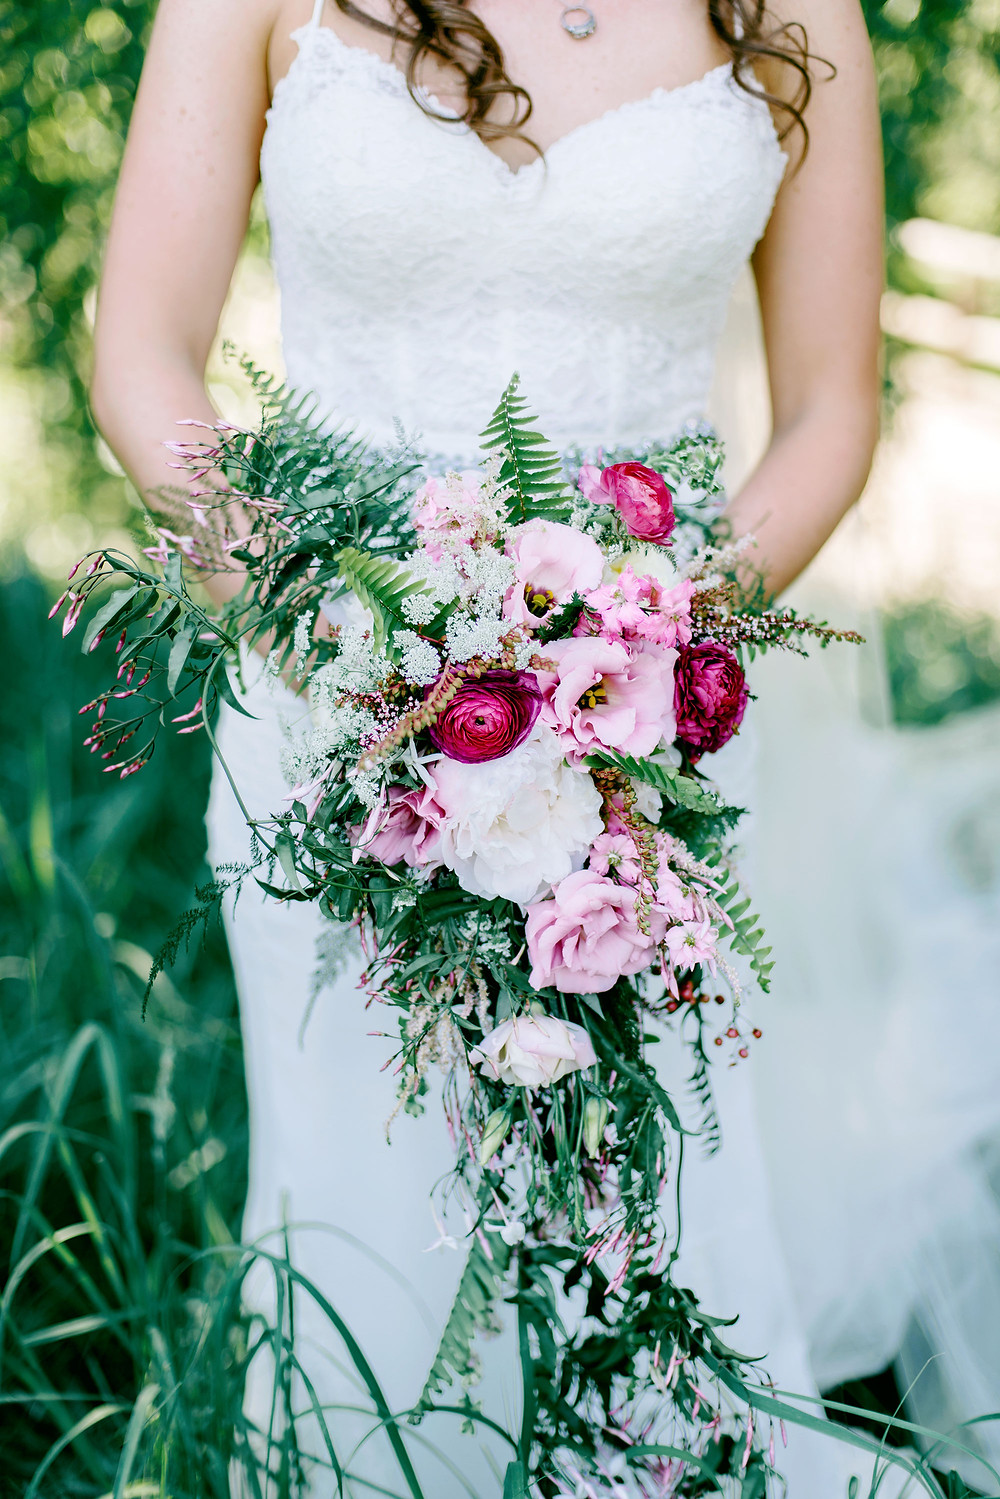 Denver Florist for your wedding at the Denver Botanic Gardens